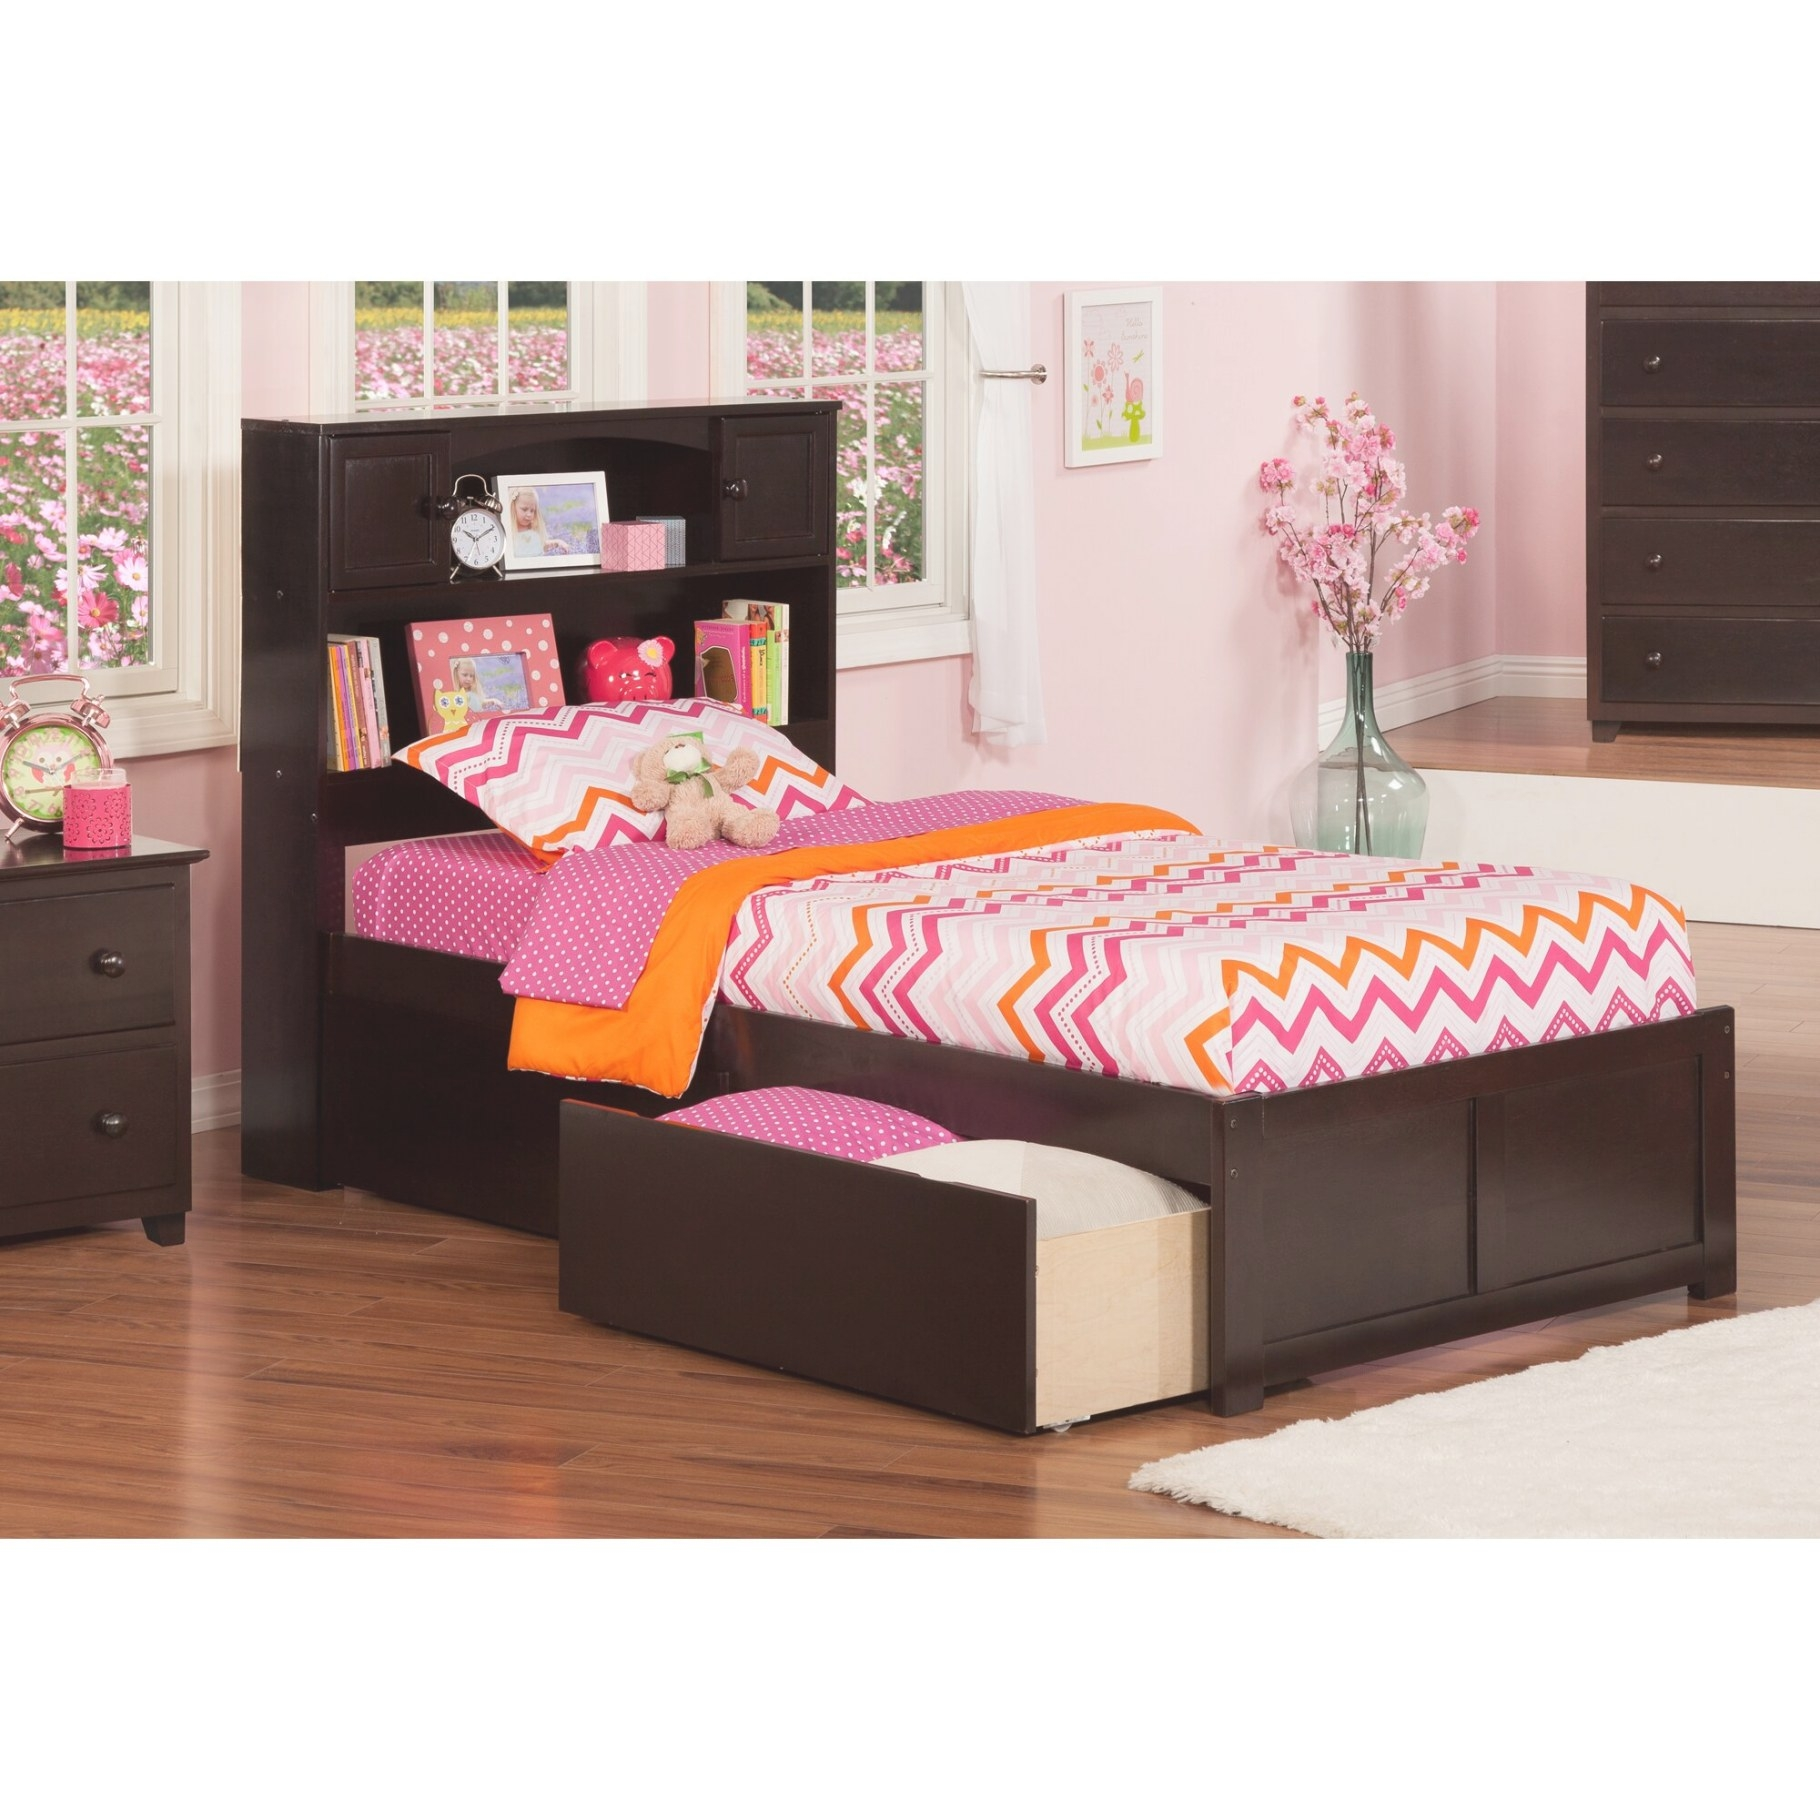 Newport Extra Long Twin Platform Bed With Storage | Wayfair within Extra Long Twin Bed